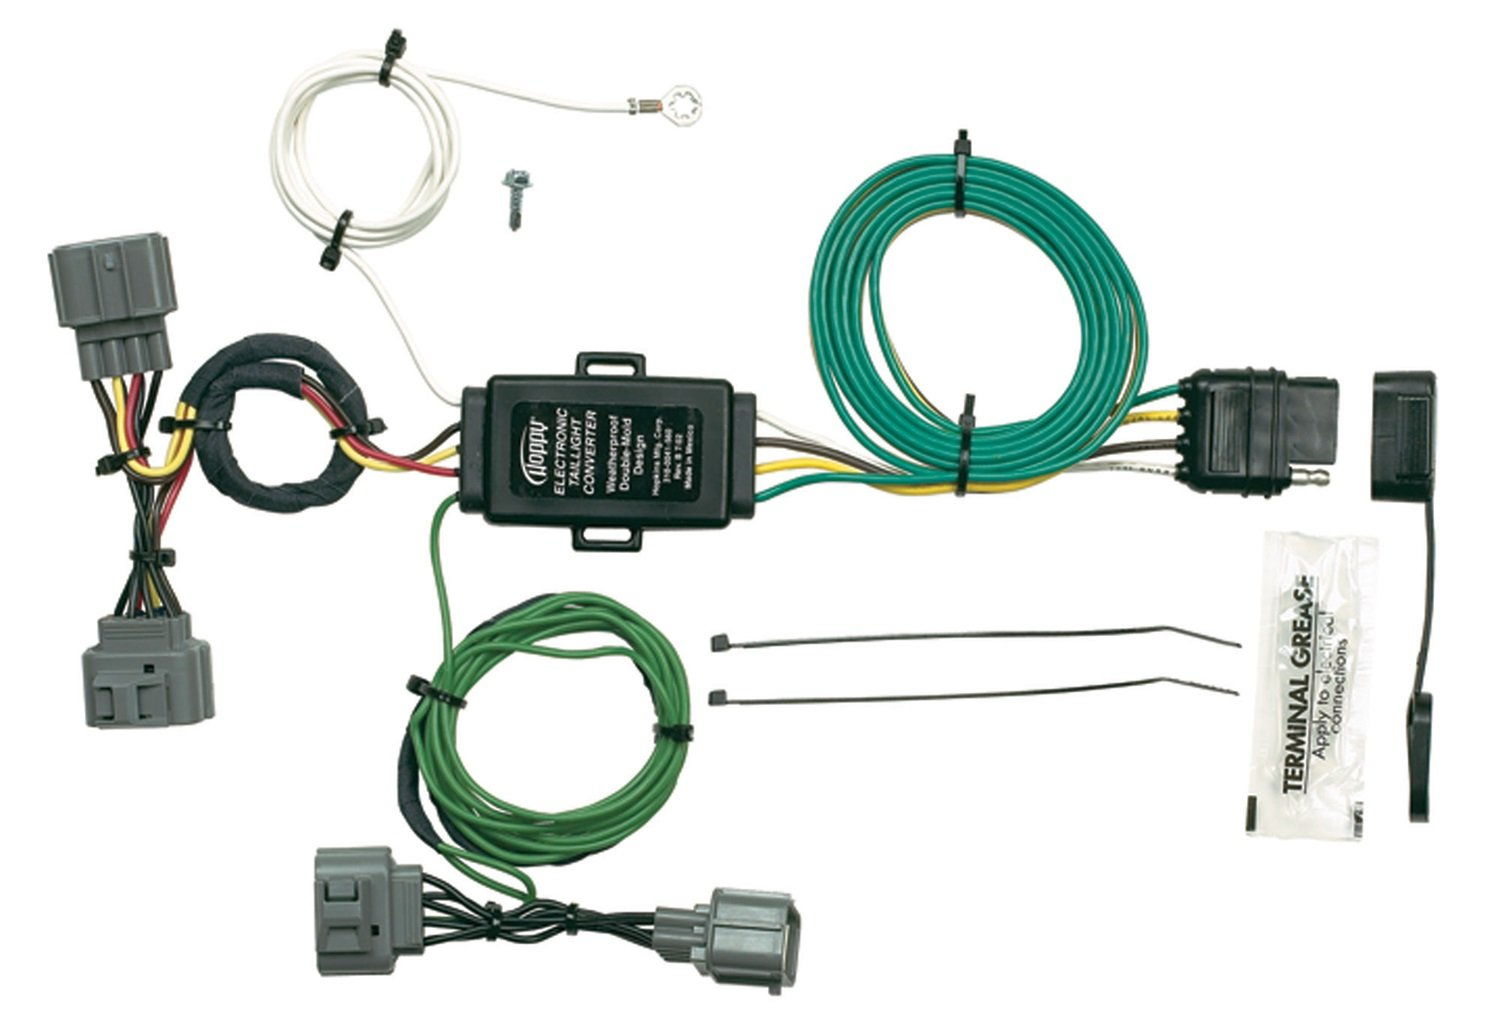 61uhFx0L6RL._SL1500_ amazon com hopkins 43125 plug in simple vehicle wiring kit Matchbox Honda Ridgeline at creativeand.co